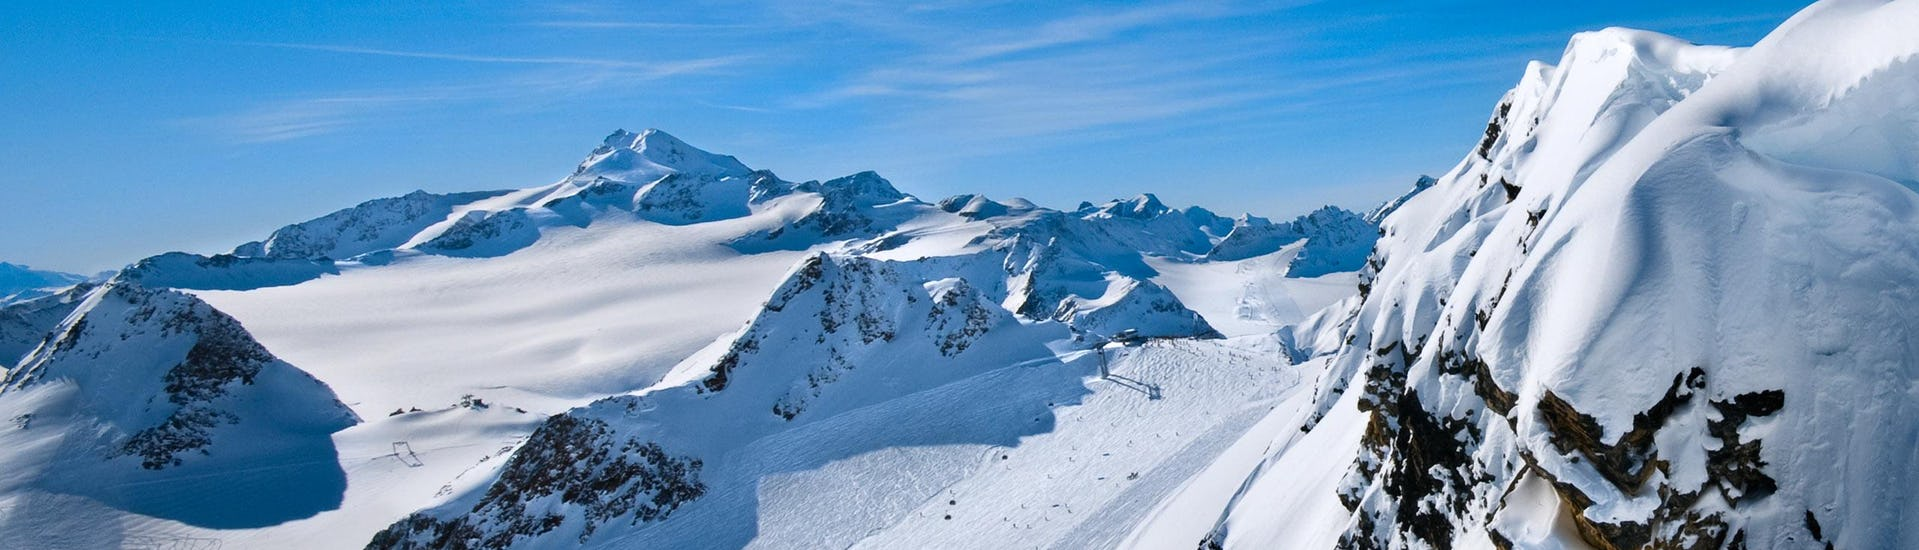 A view of a snowy mountain top in the ski resort of Germany, where ski schools gather to start their ski lessons.